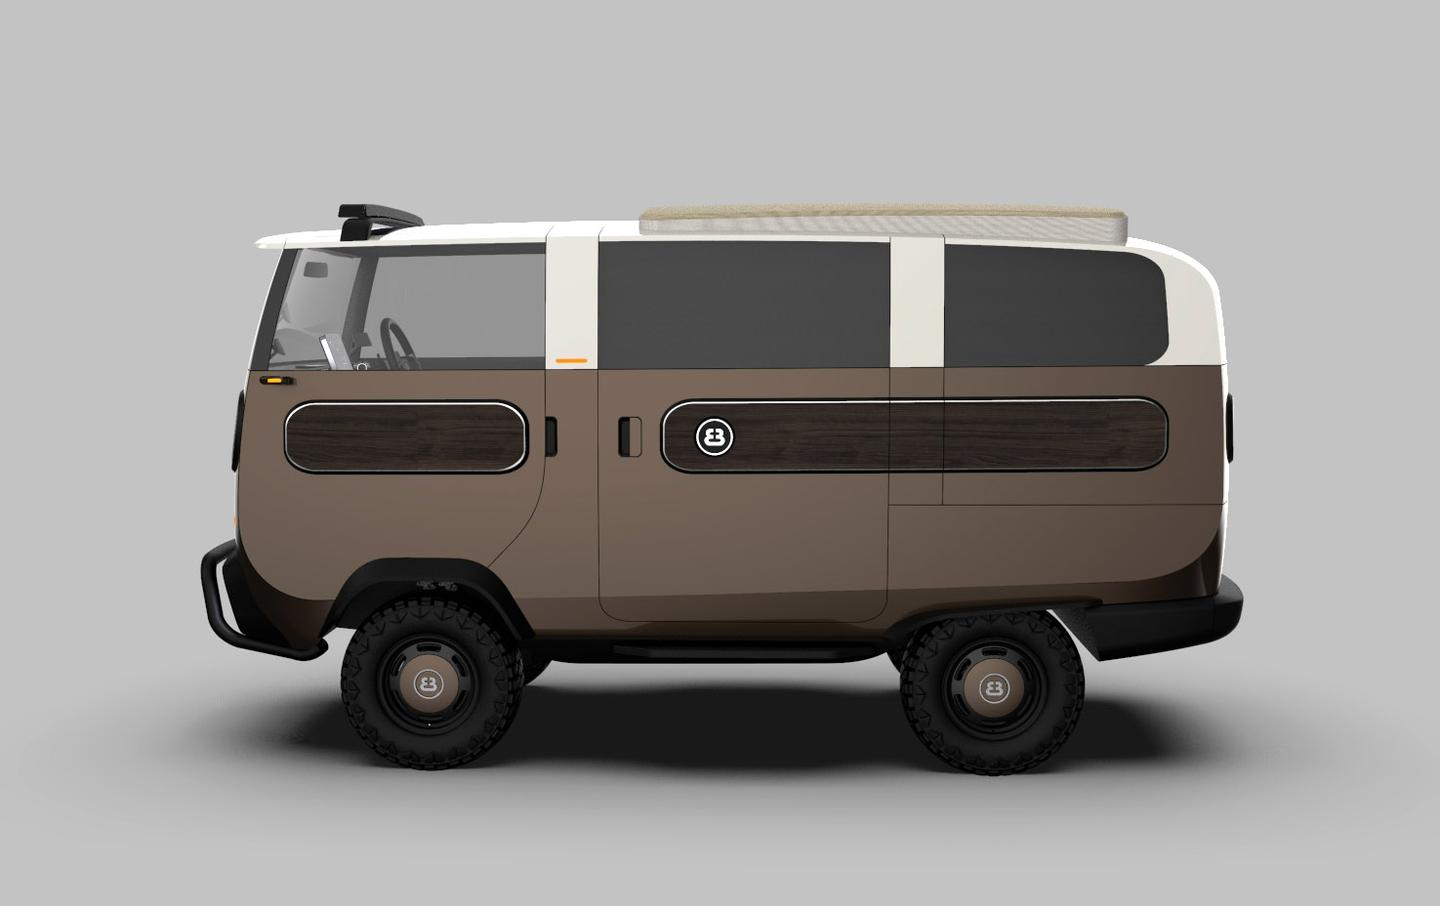 With electric four-wheel drive baked in, the eBussy will be a platform for a capable and tiny off-roader